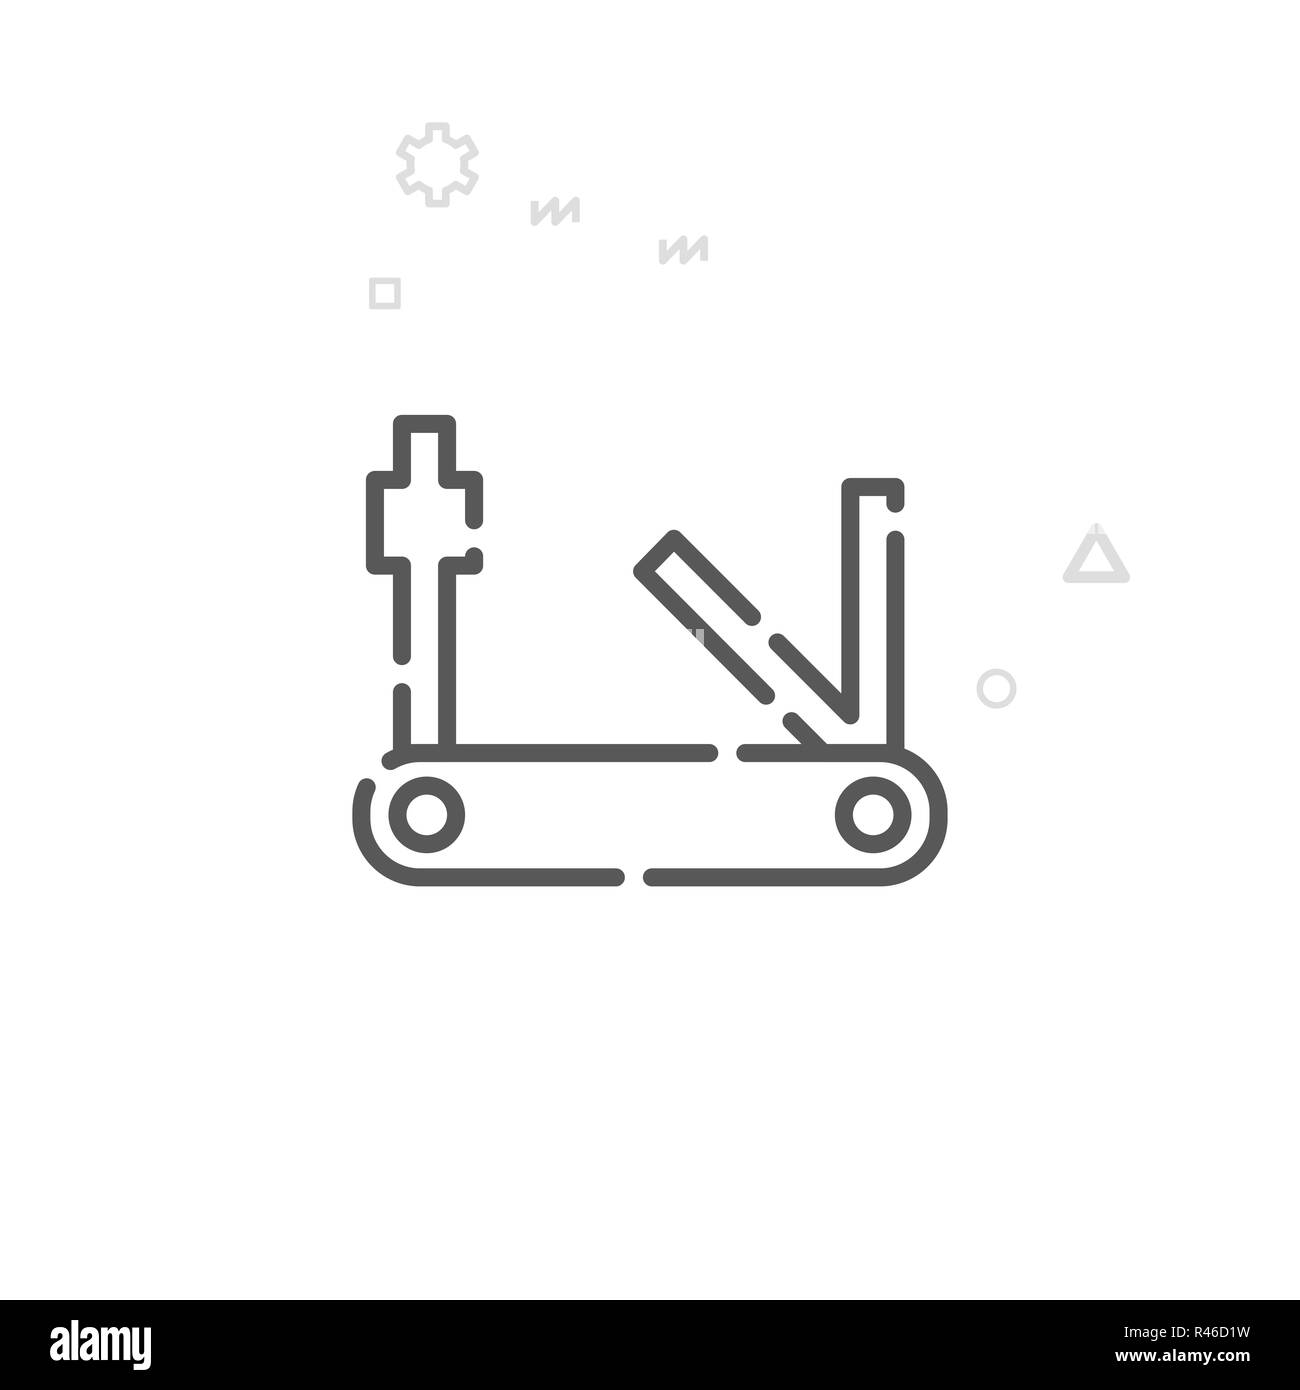 Bike or Bicyle Tools Line Icon. Bicycle Multitool Symbol, Pictogram, Sign. Light Abstract Geometric Background. Editable Stroke. Adjust Line Weight. D - Stock Image